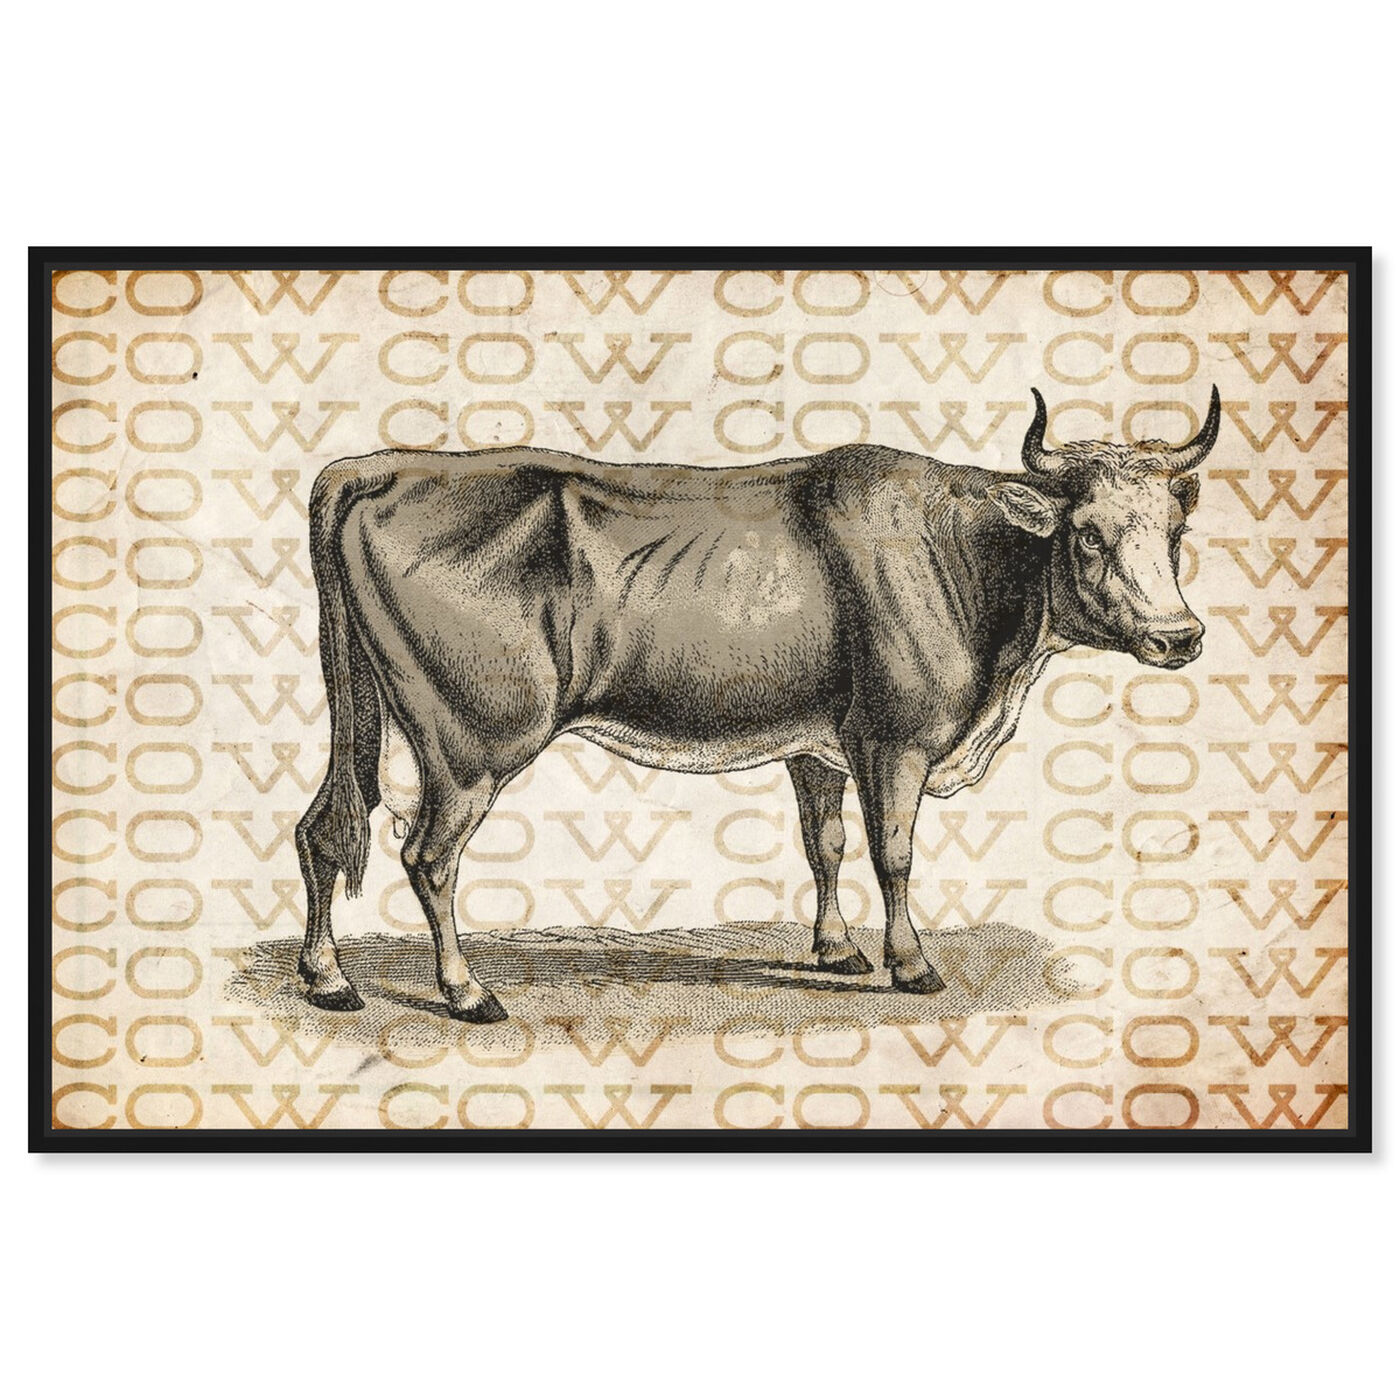 Front view of Cow featuring animals and farm animals art.